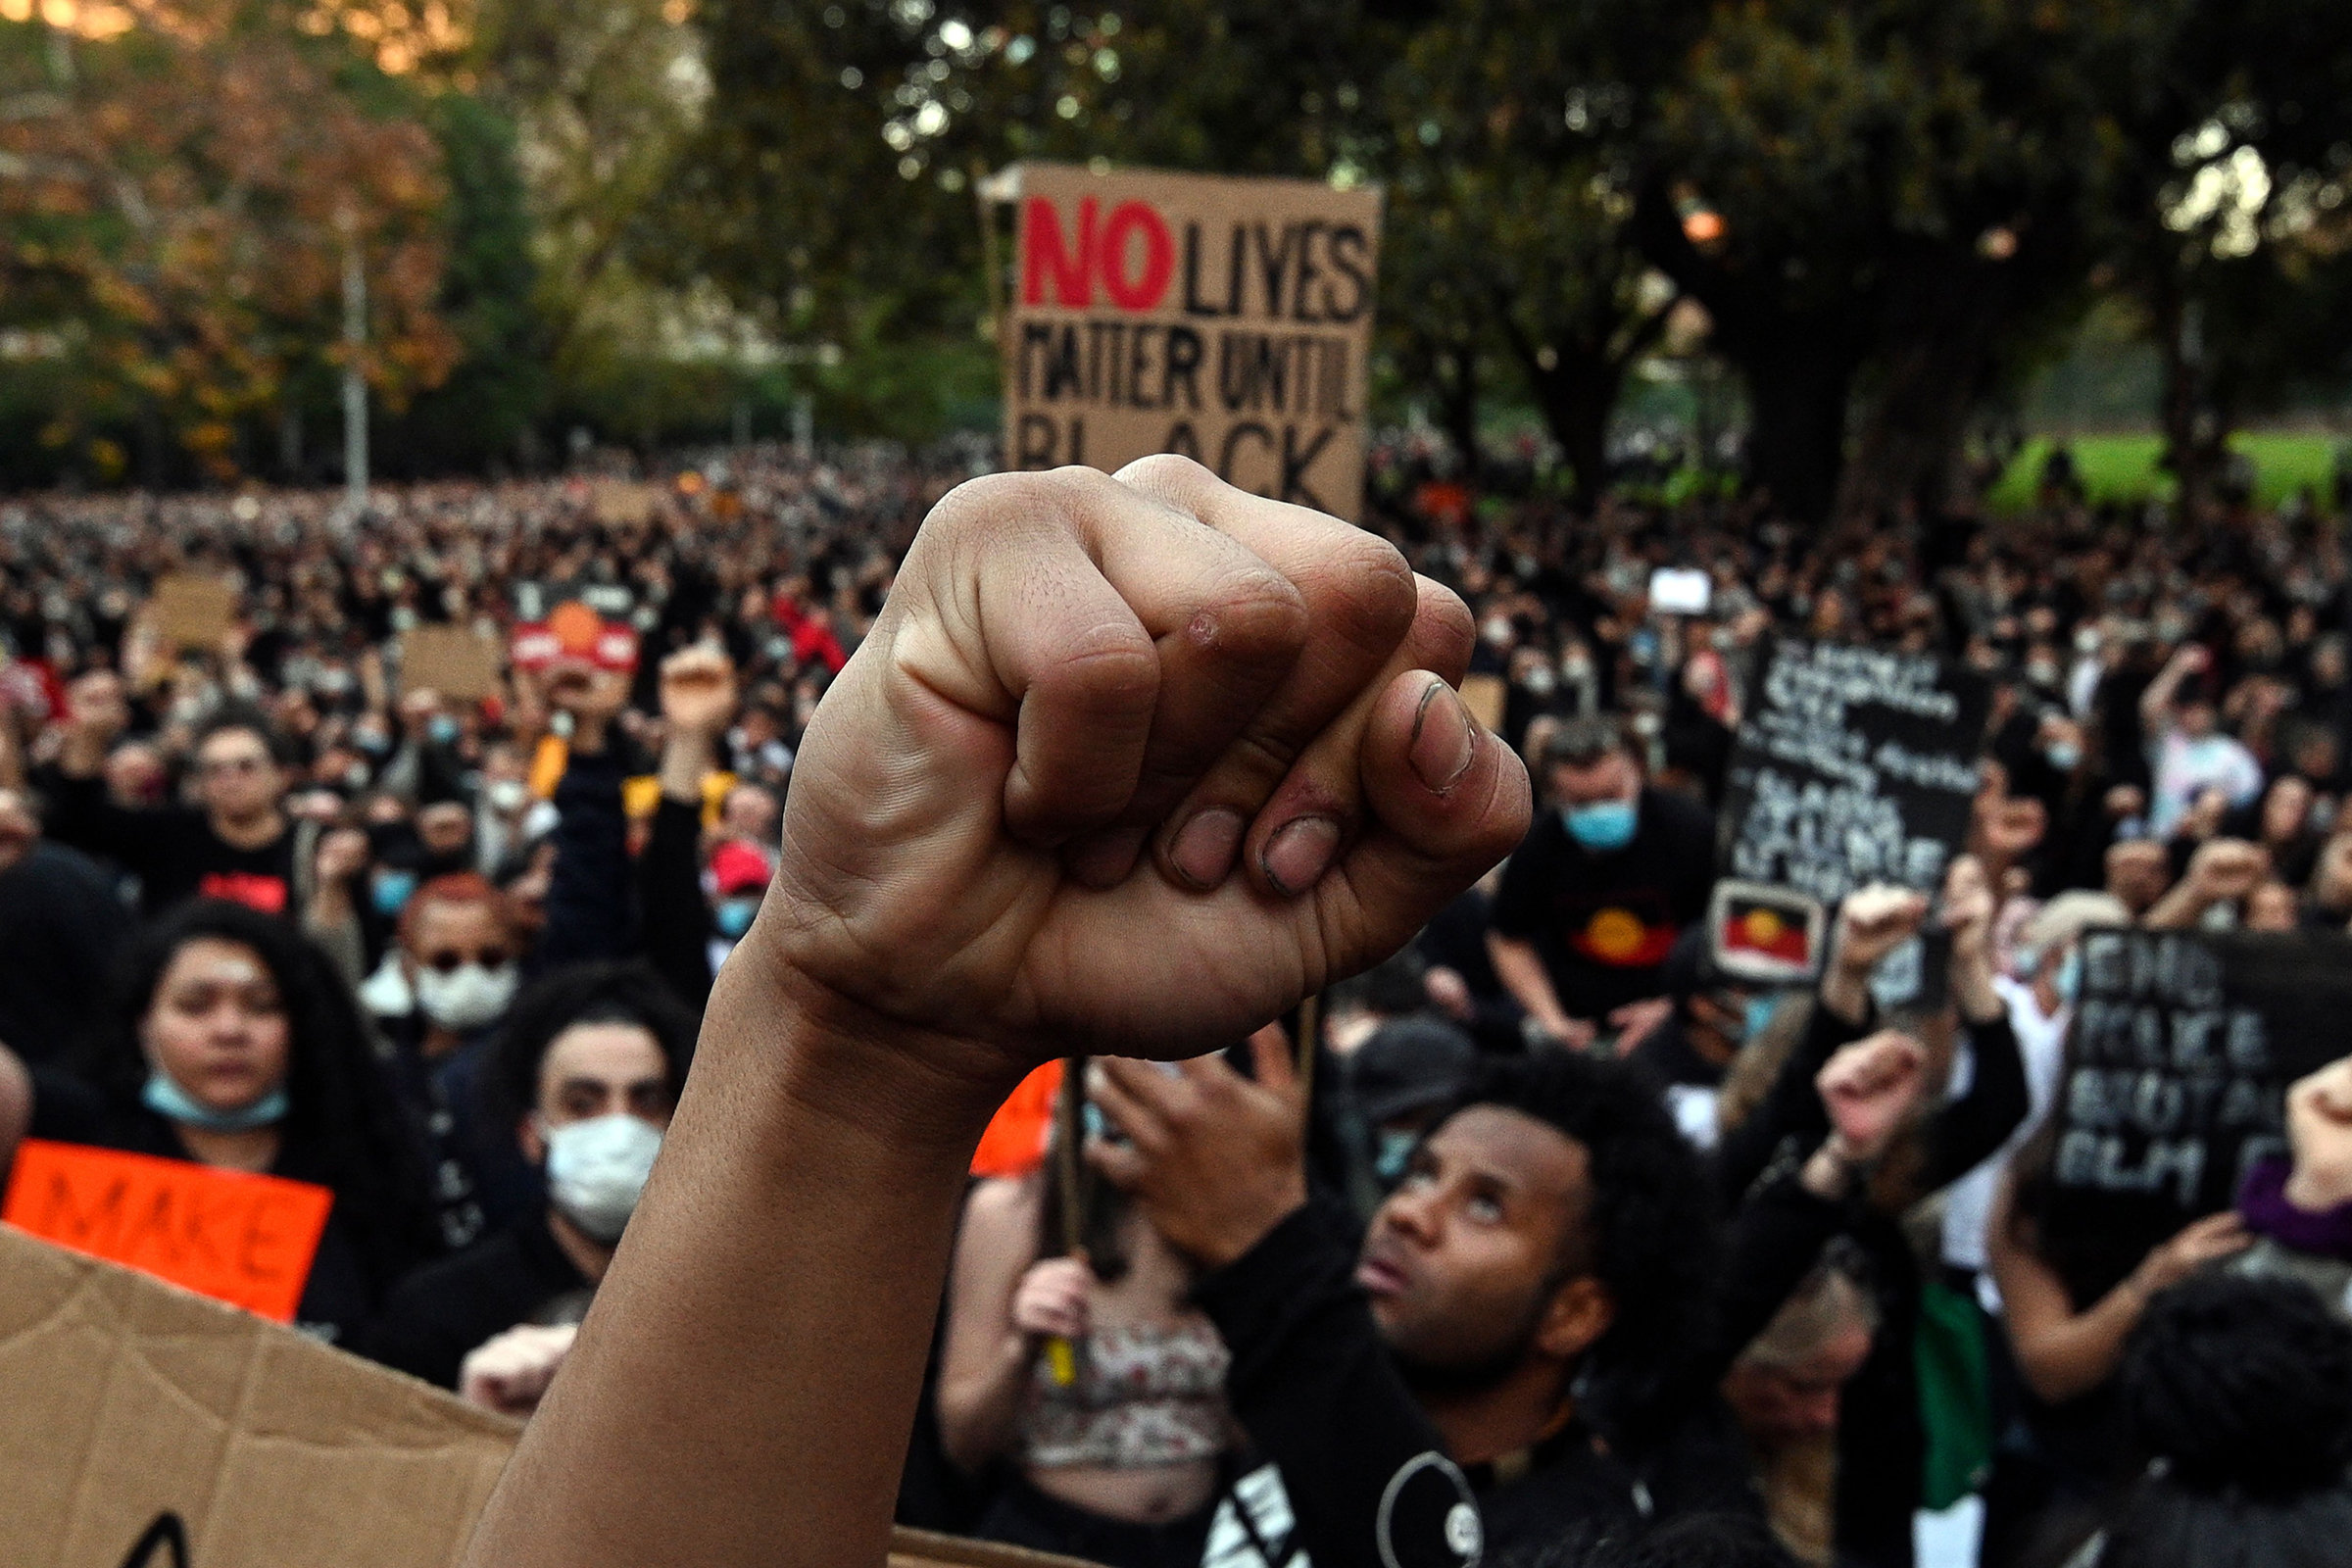 Demonstrators attend a Black Lives Matter protest to express solidarity with US protestors and demand an end to Aboriginal deaths in custody in Sydney, Australia,on June 6, 2020.